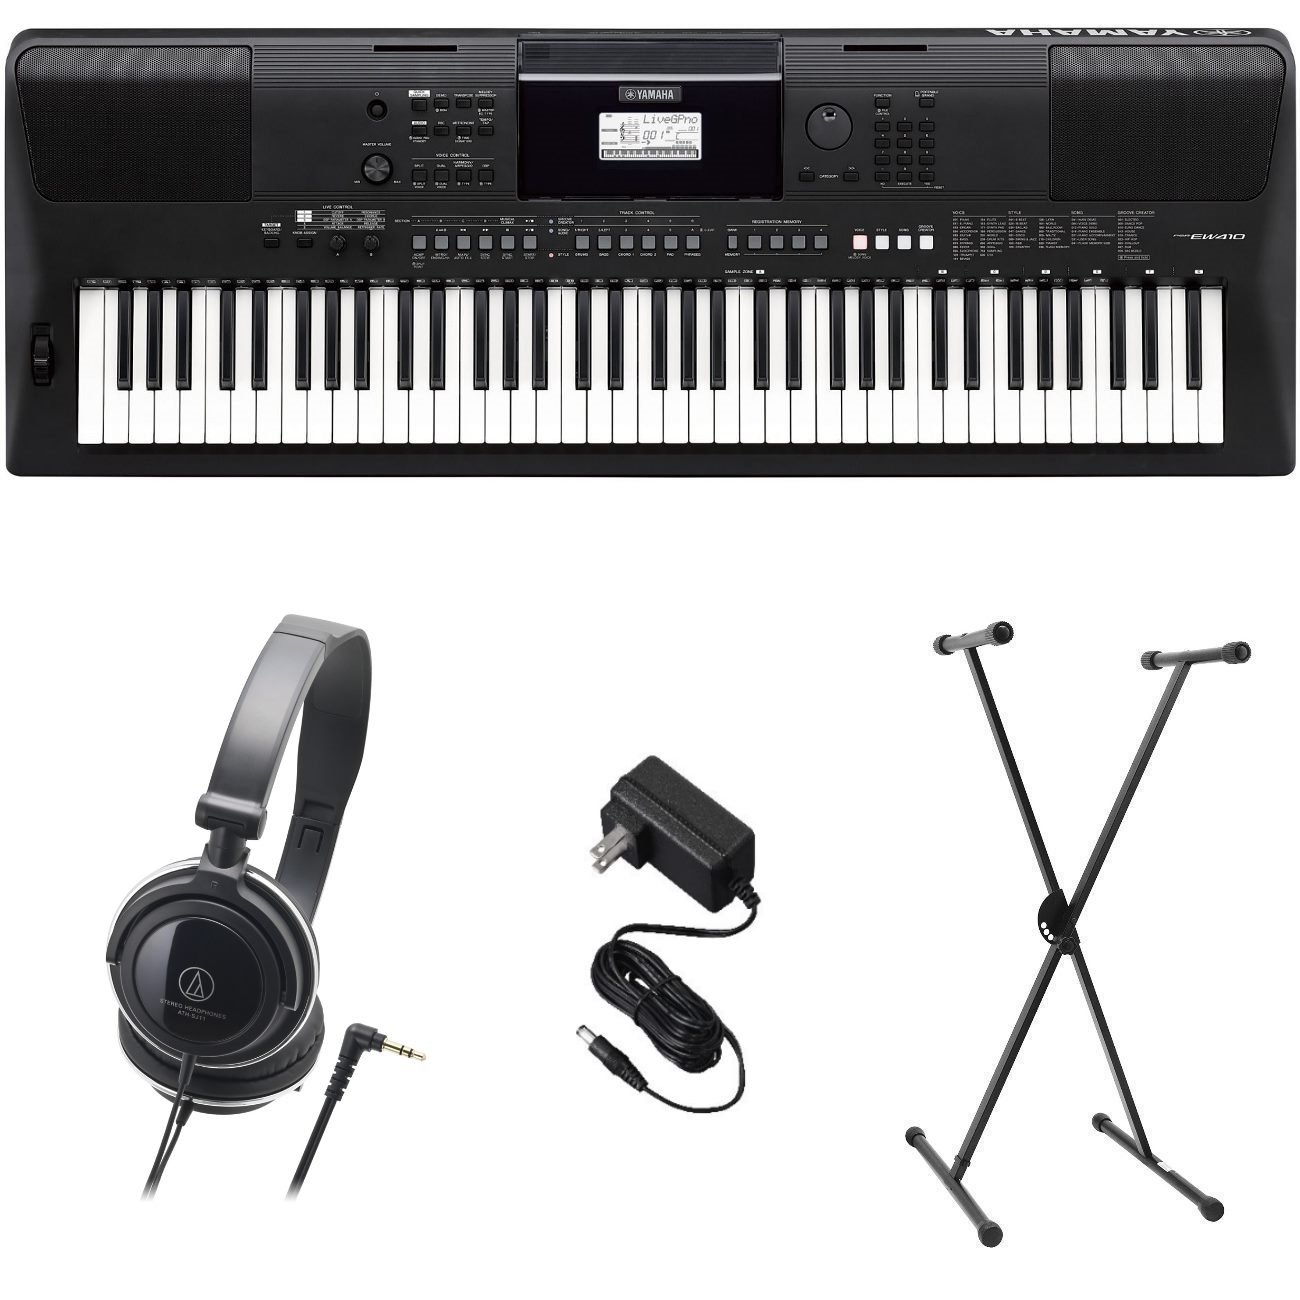 Yamaha PSR-EW410 PKS Premium Keyboard Pack with Power Supply, Stand, and Headphones